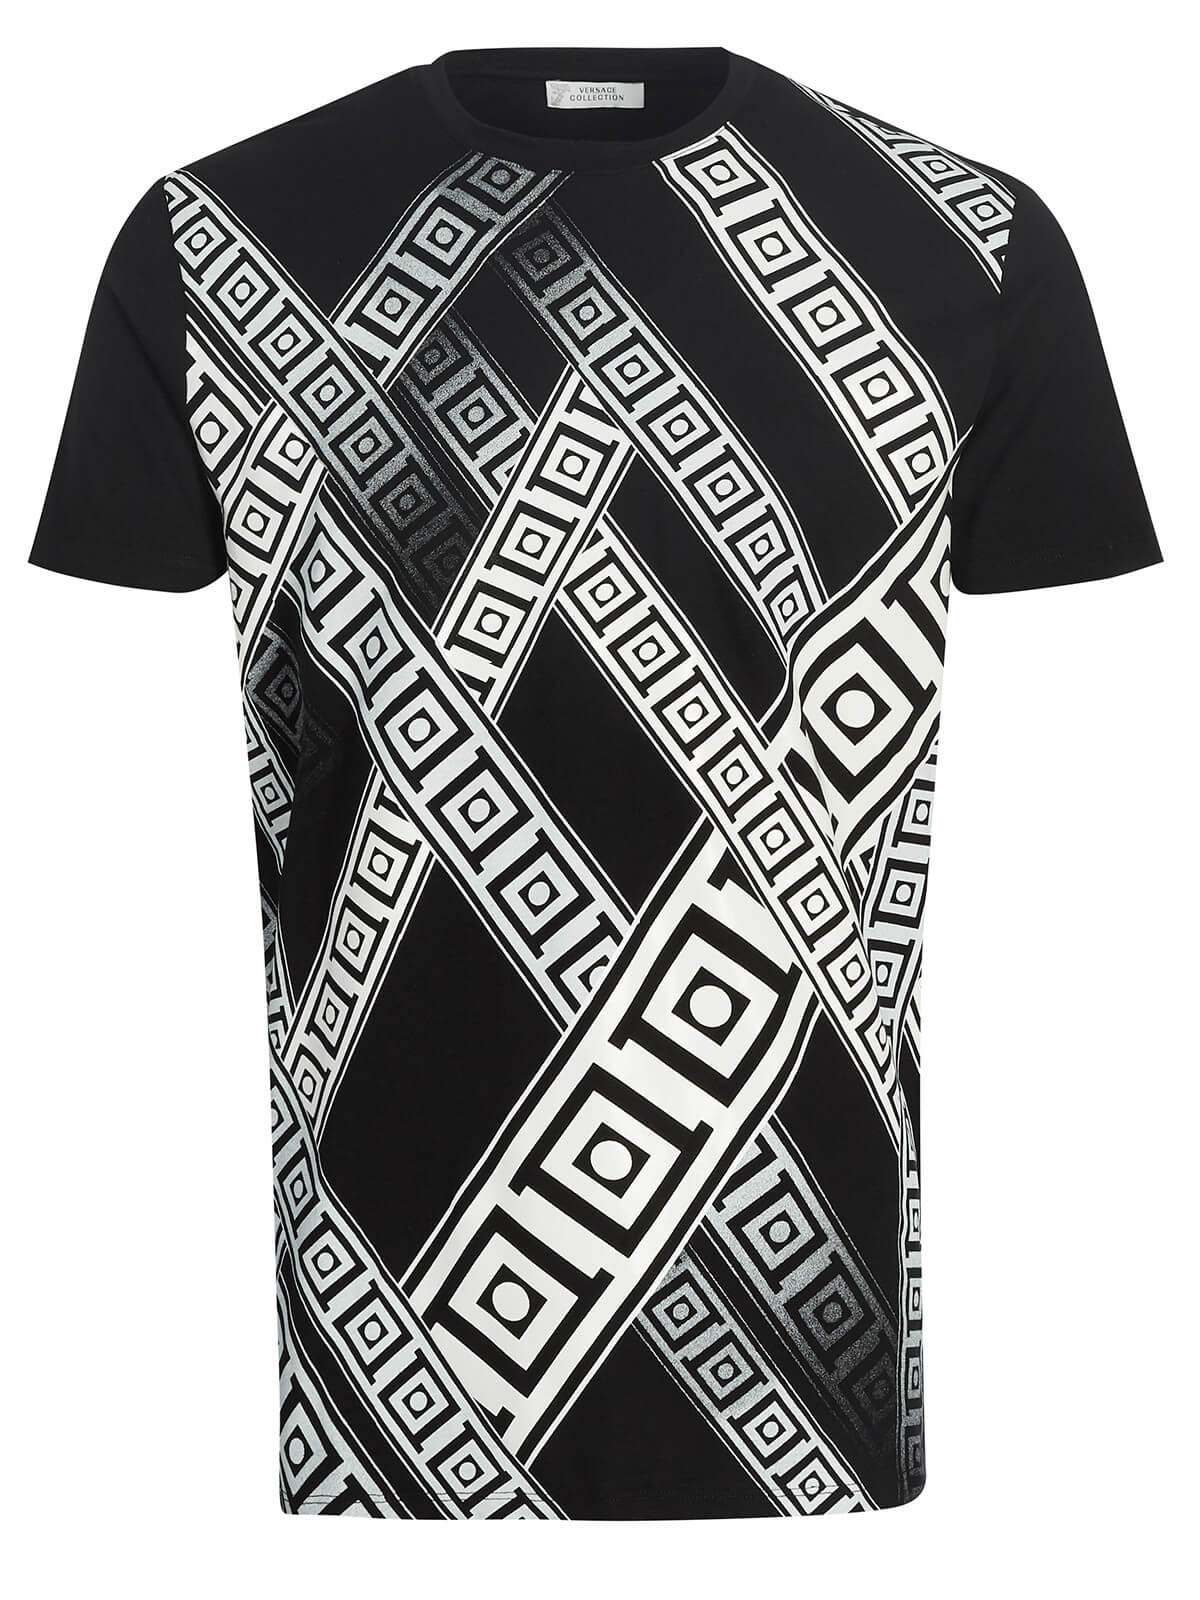 Versace Collection T-shirt black   Fashionesta online shop f989c73c87b